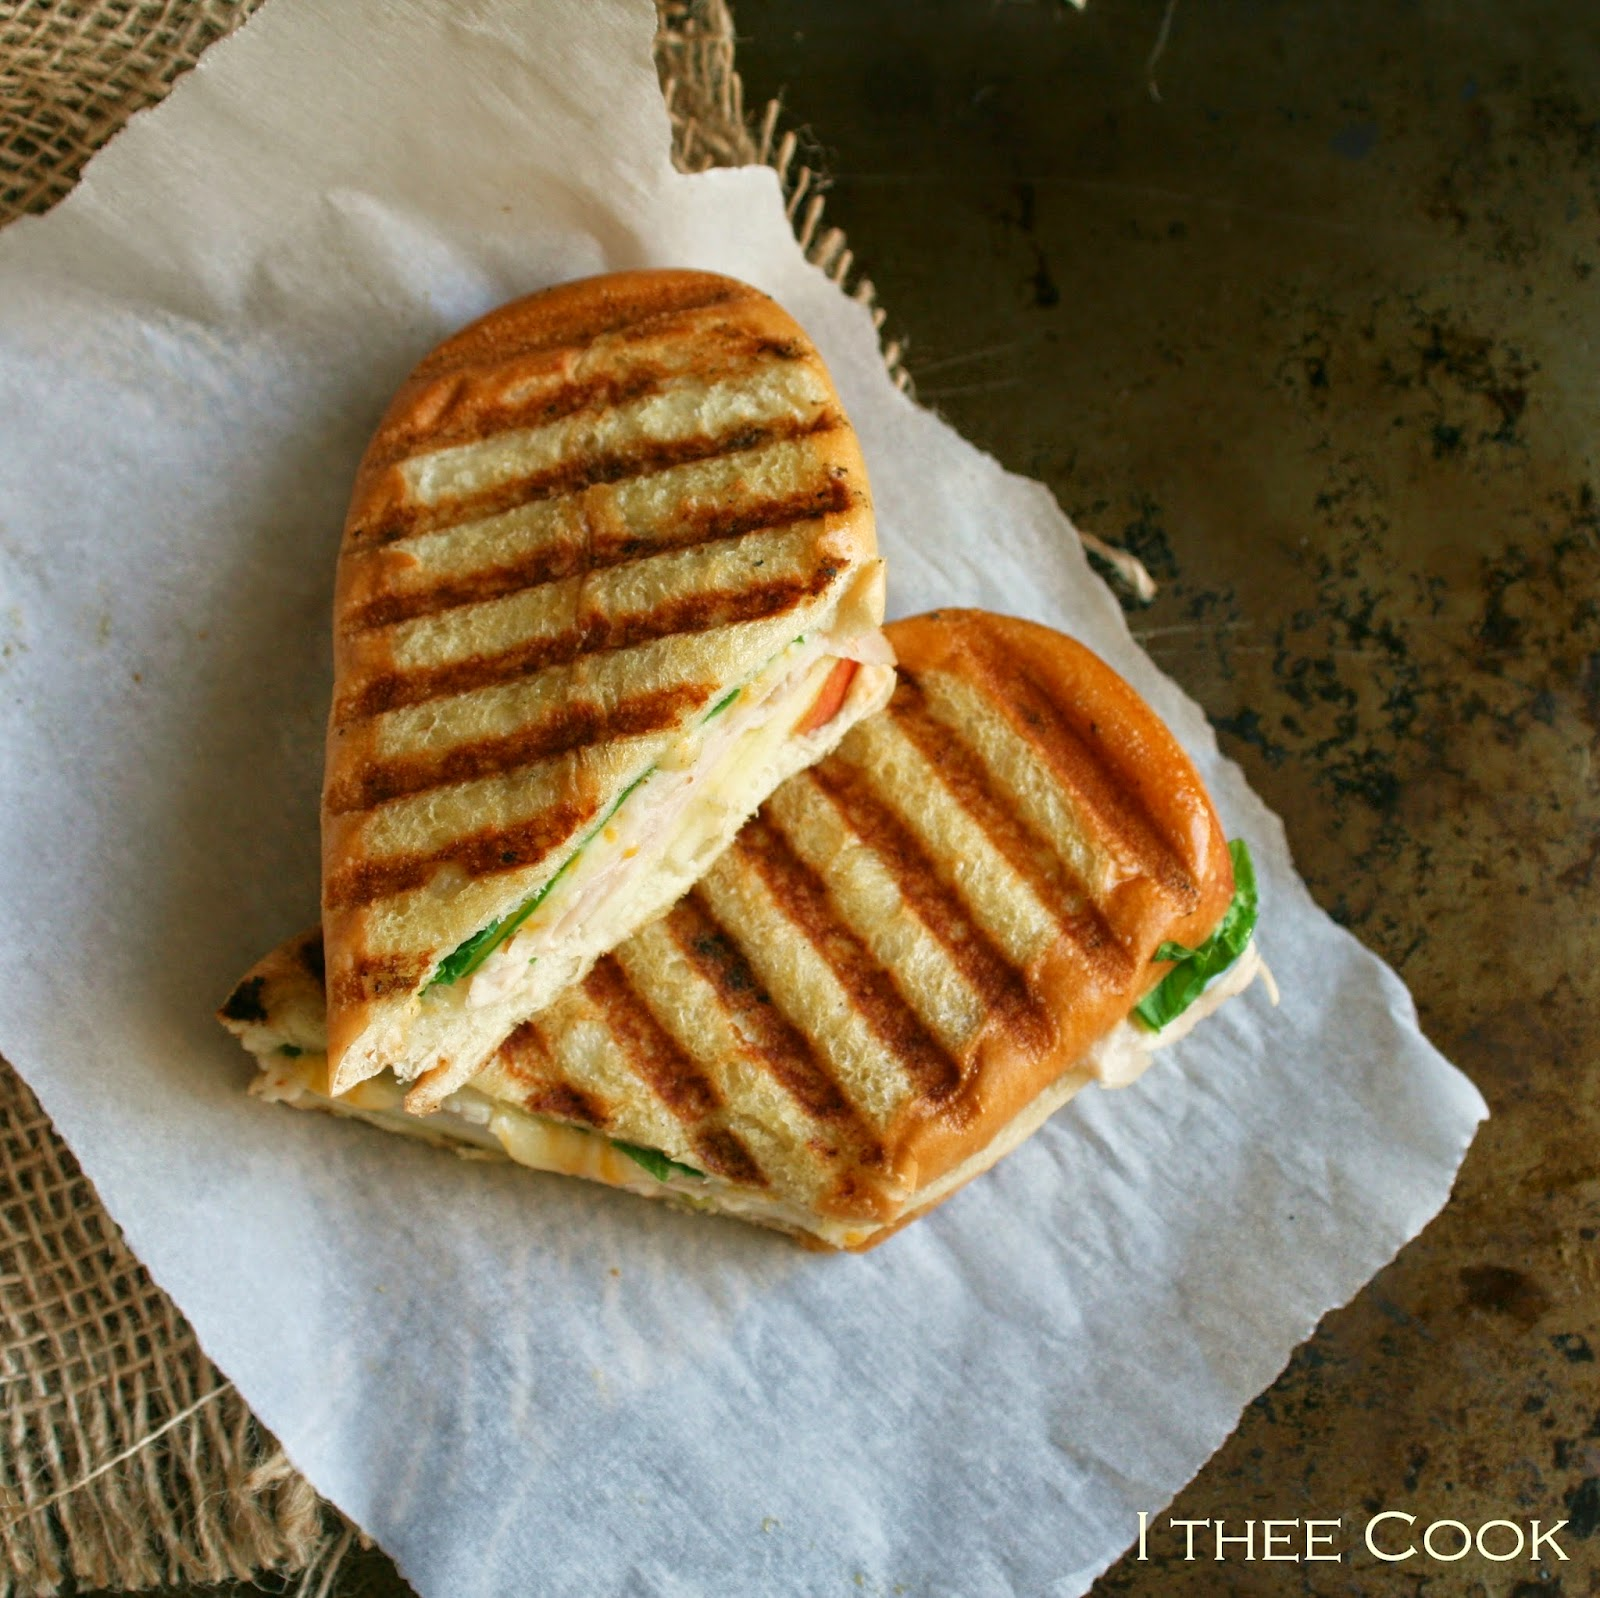 This is the perfect lunch for two. Turkey, cheddar, apple, baby kale ...